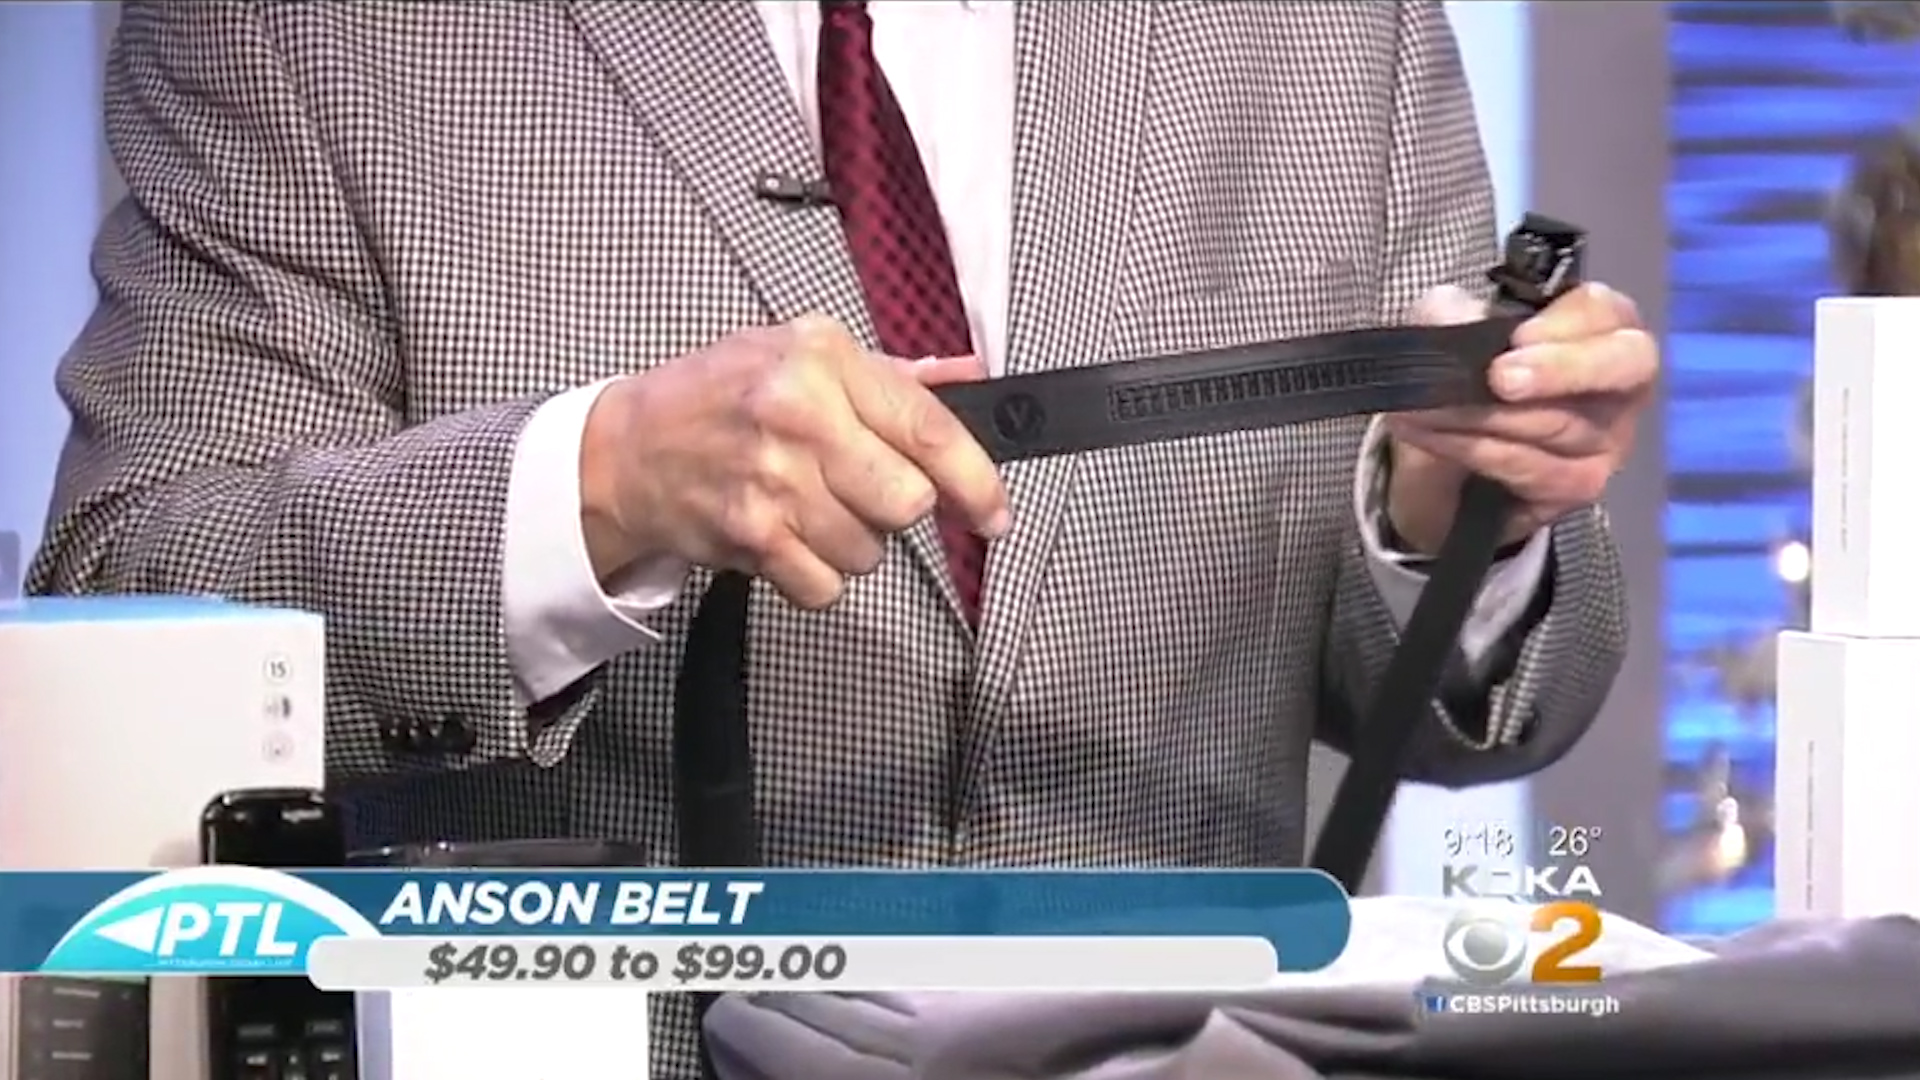 ANSON BELT - $49.90 to $99.00Shop Now